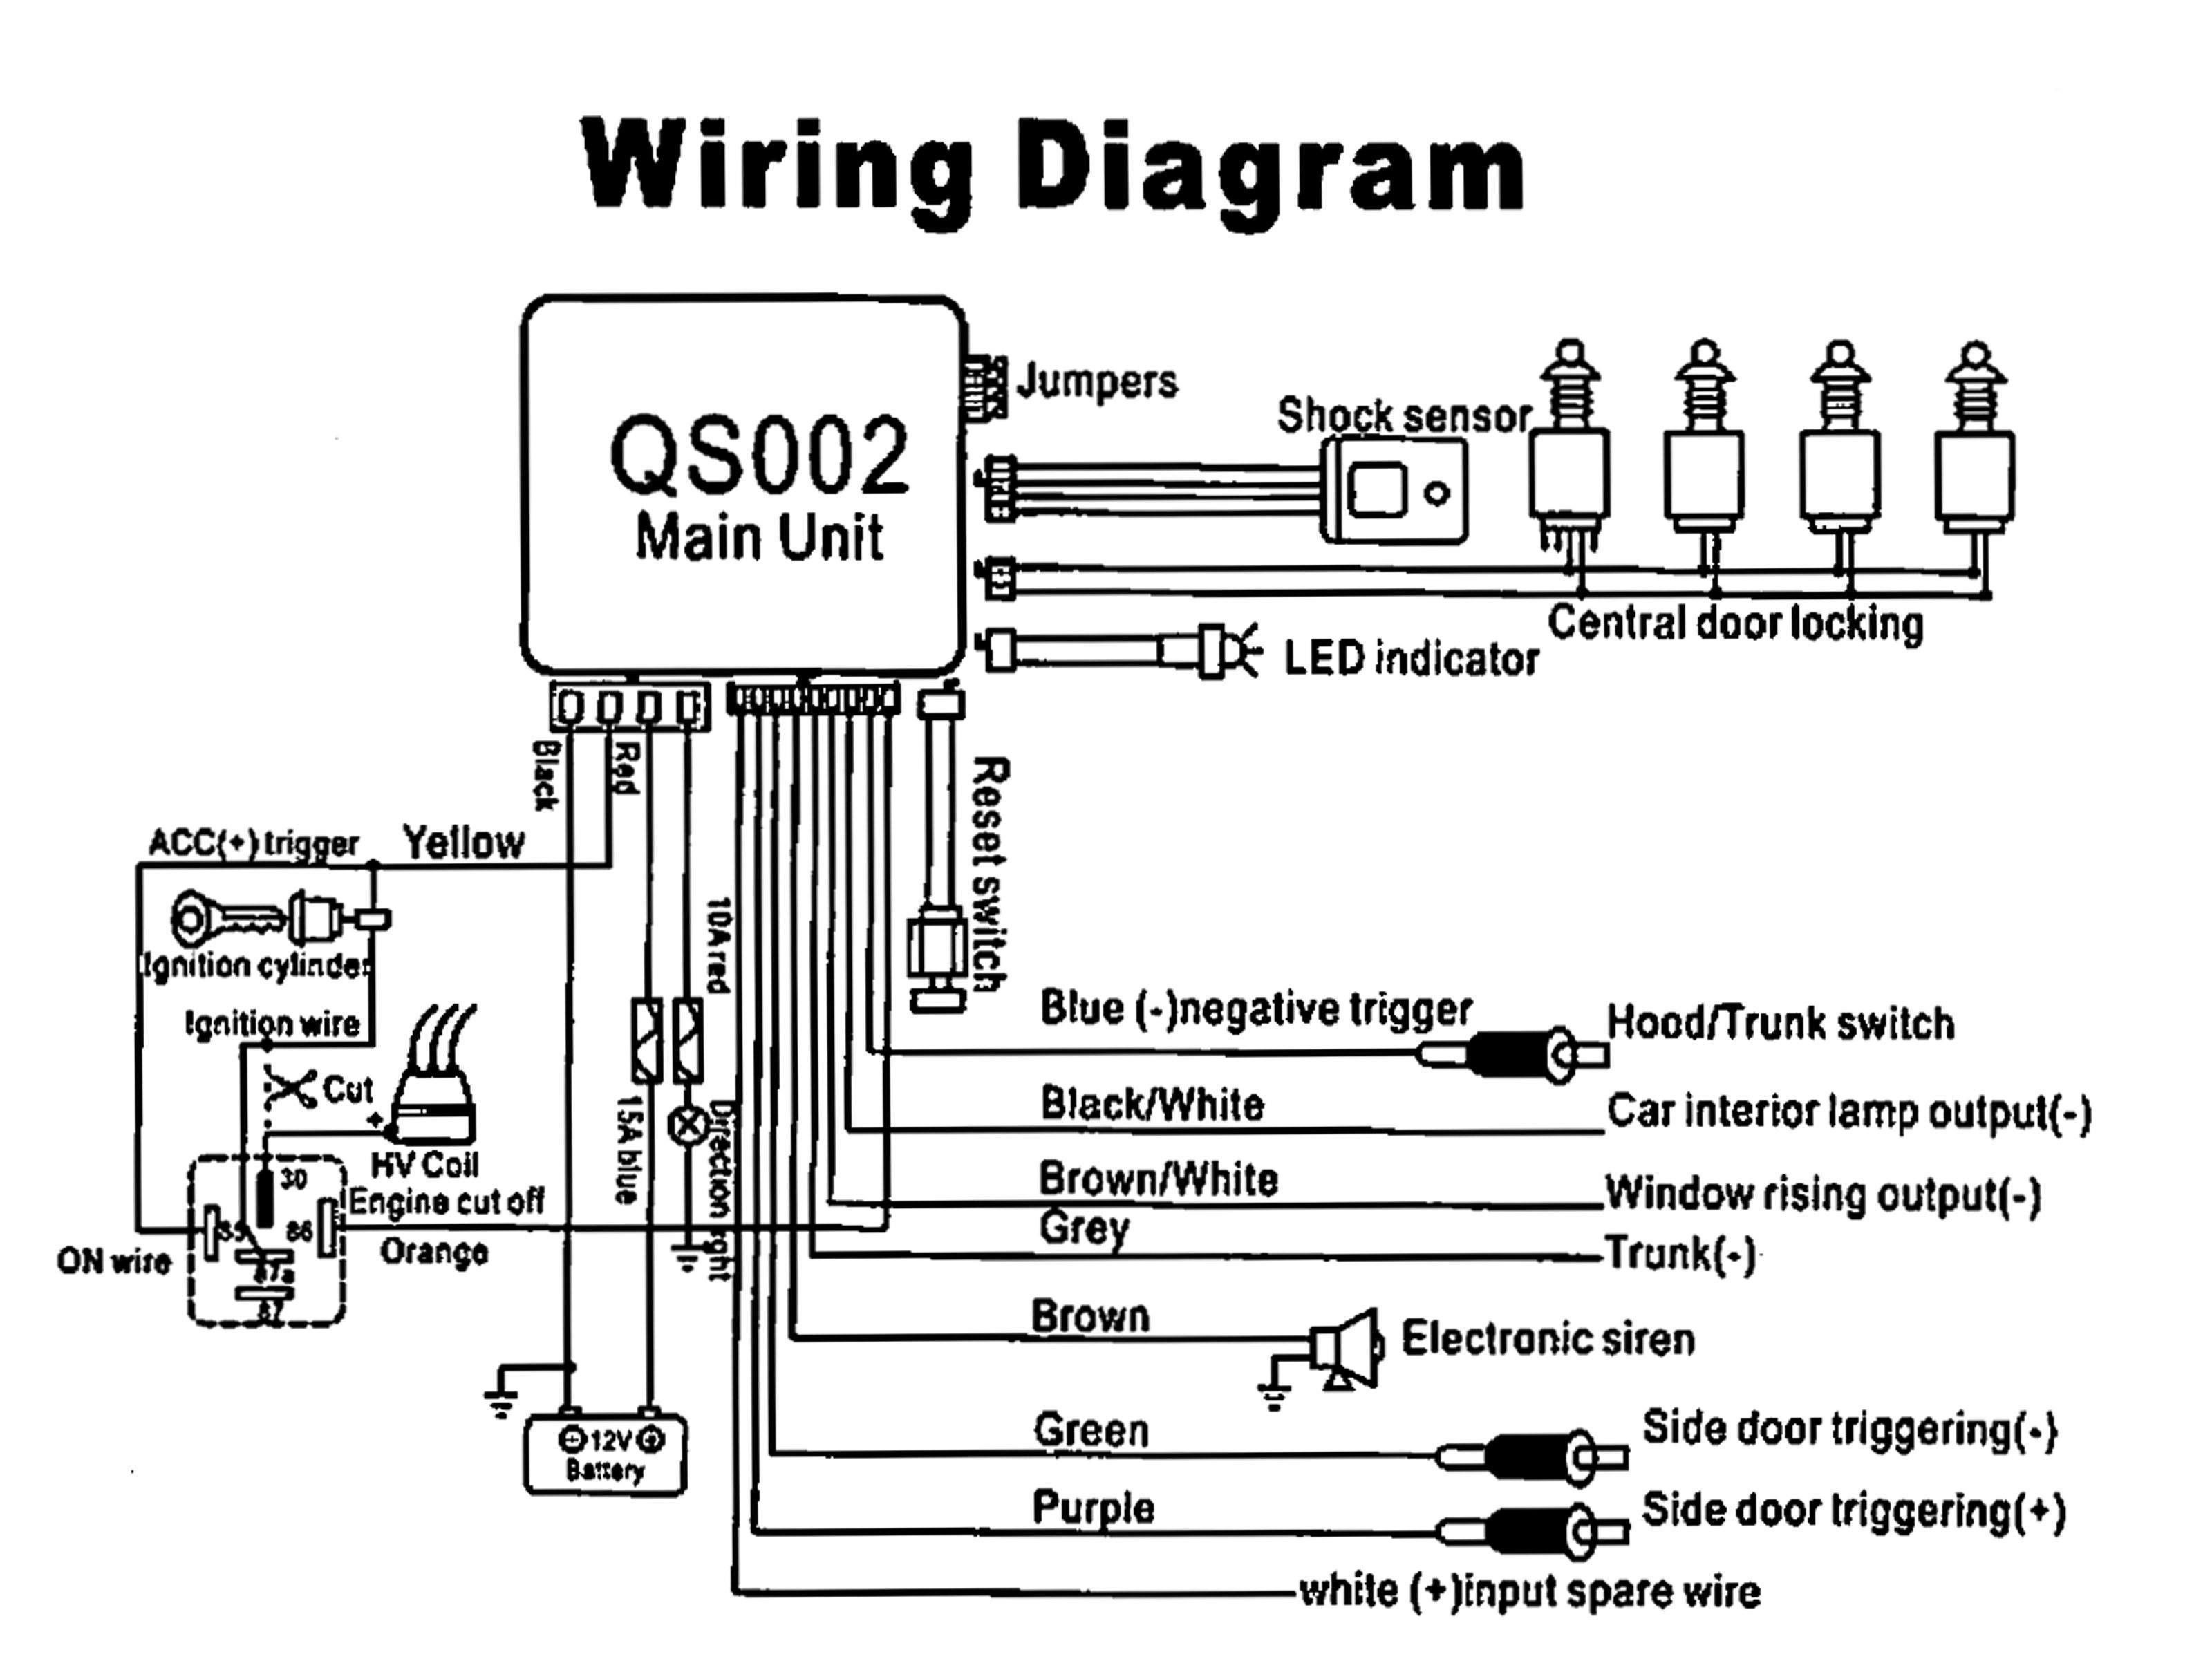 Car Alarm Vehicle Wiring Diagram - 1998 Bmw 318i Starter Wiring for Wiring  Diagram SchematicsWiring Diagram Schematics